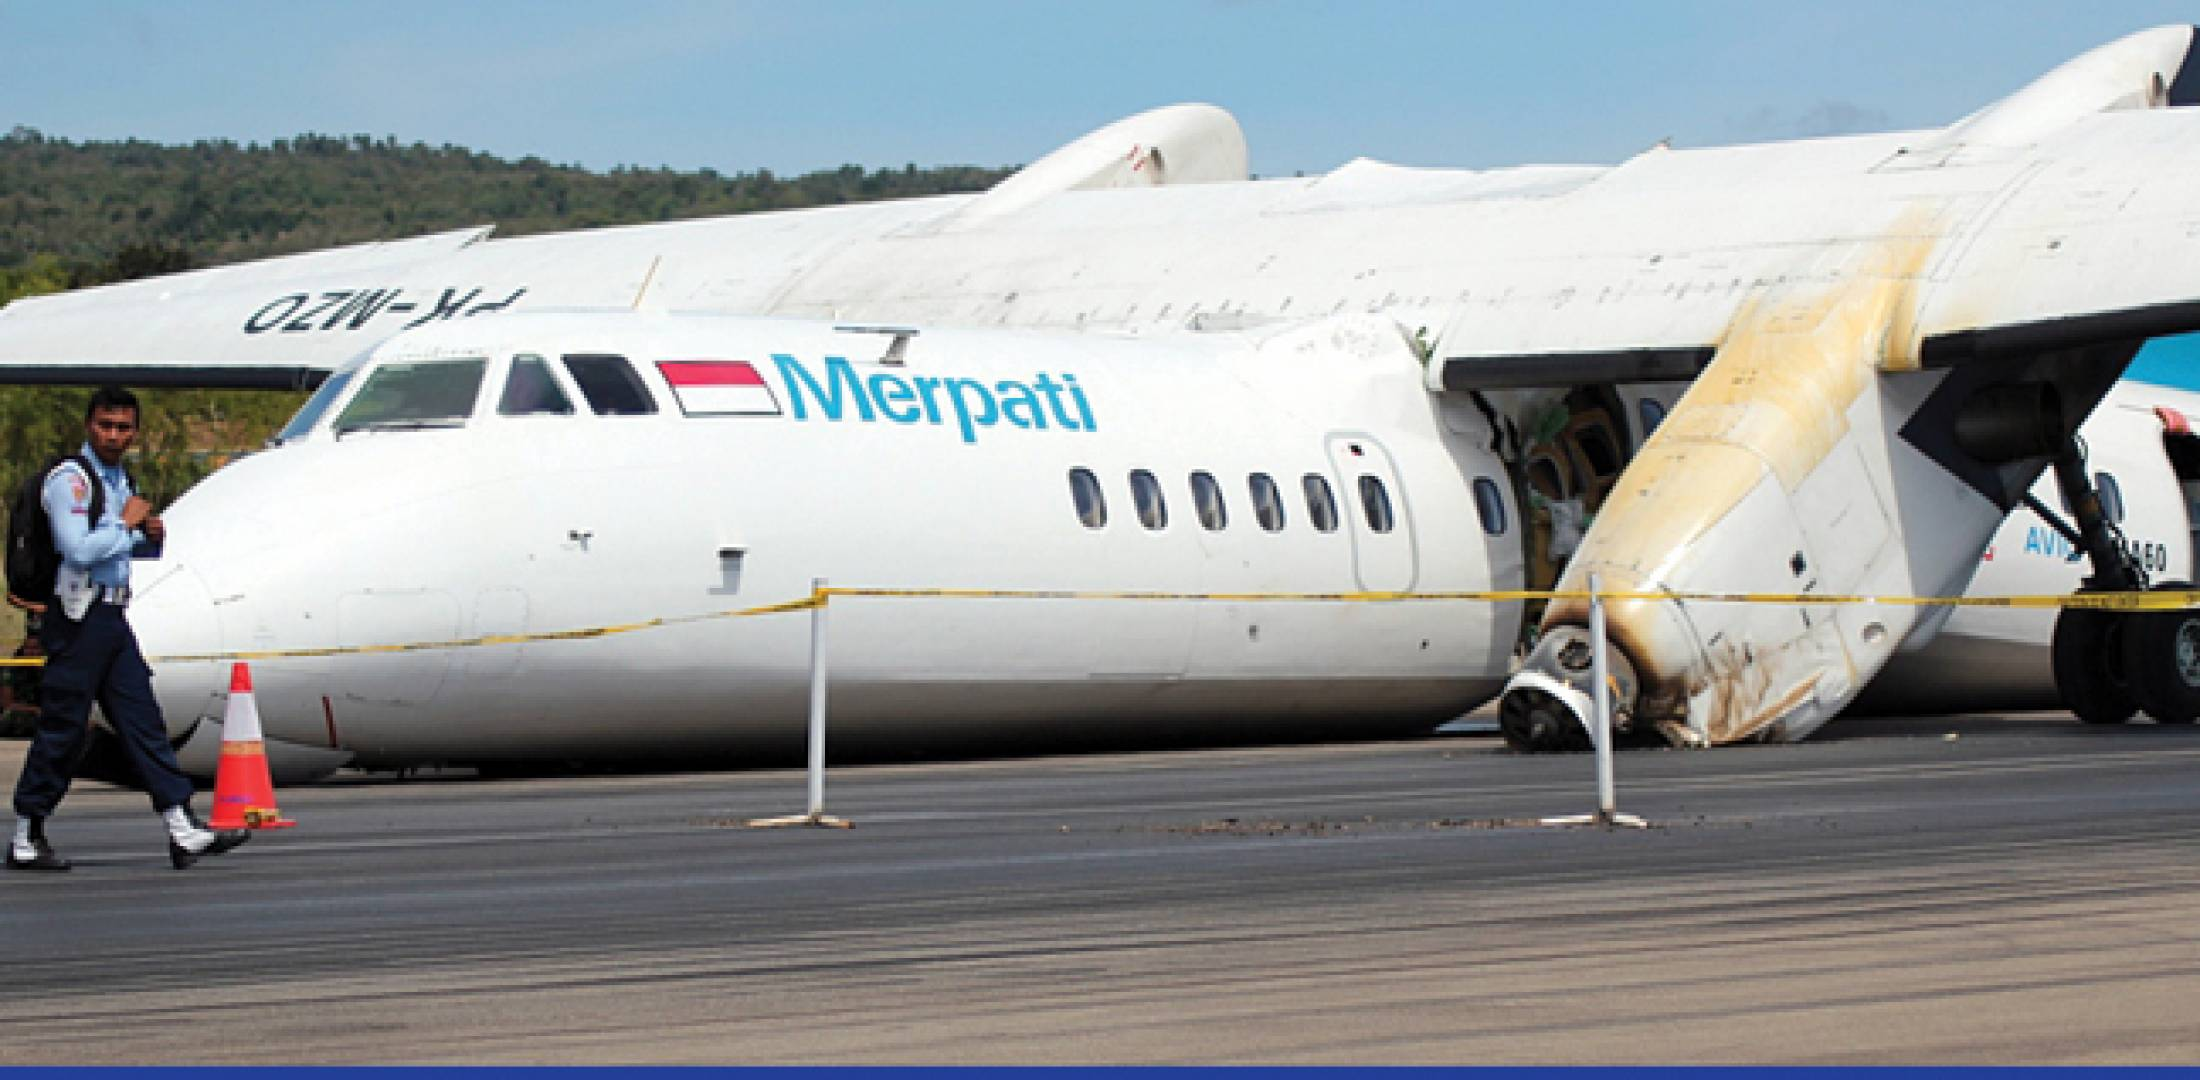 A Merpati Airlines MA-60 lay effectively destroyed following a crash while landing at El Tari Airport in Kupang, Indonesia.